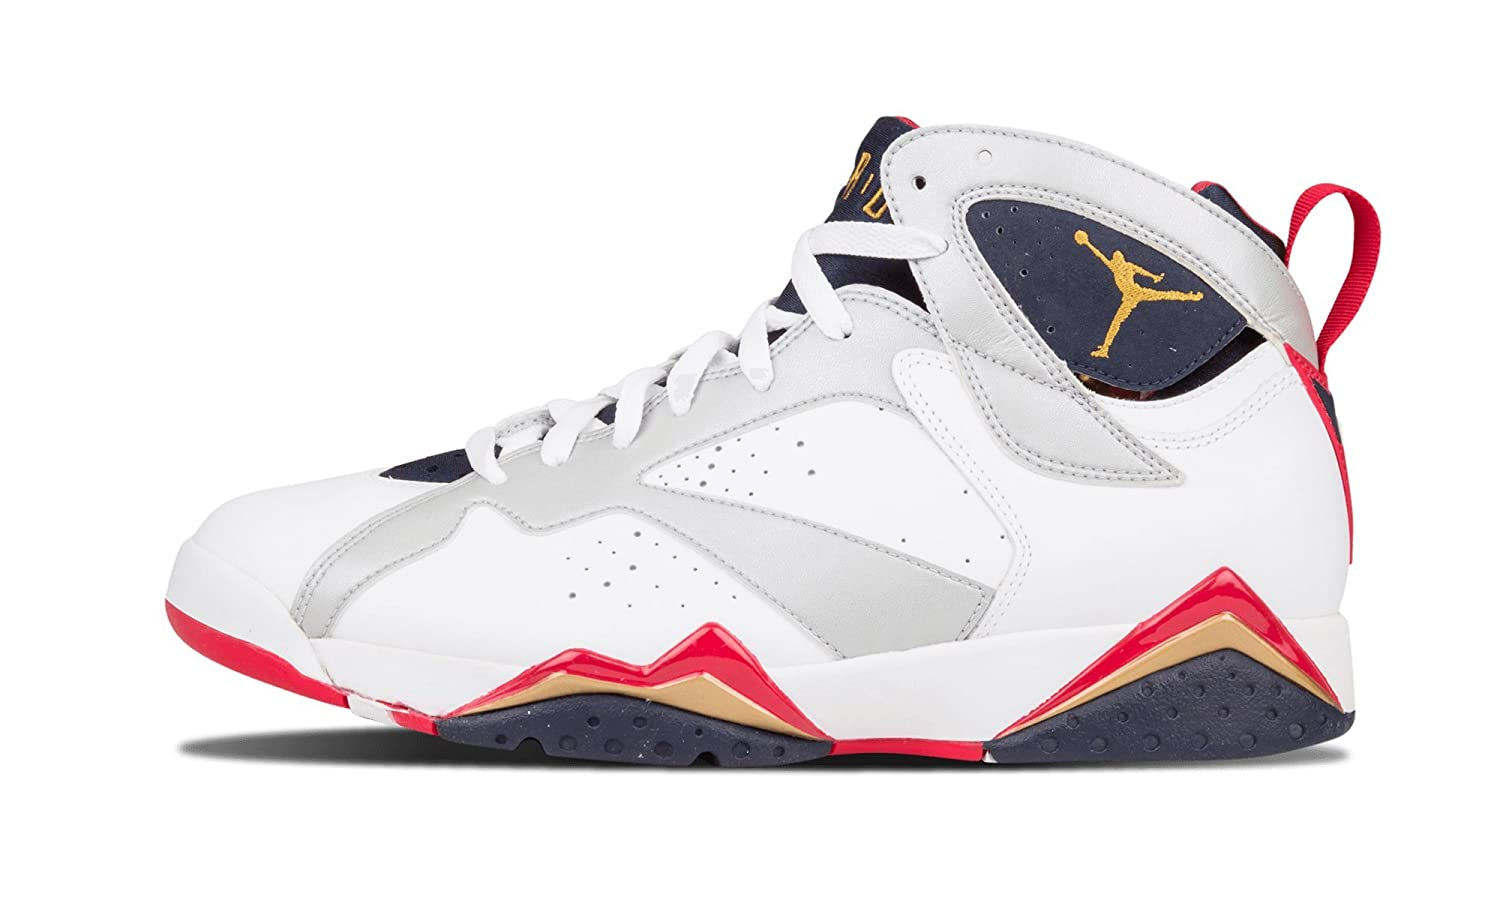 uk availability c1509 07fbd NIKE Mens Air Jordan 7 Retro Olympic Leather Basketball Shoes